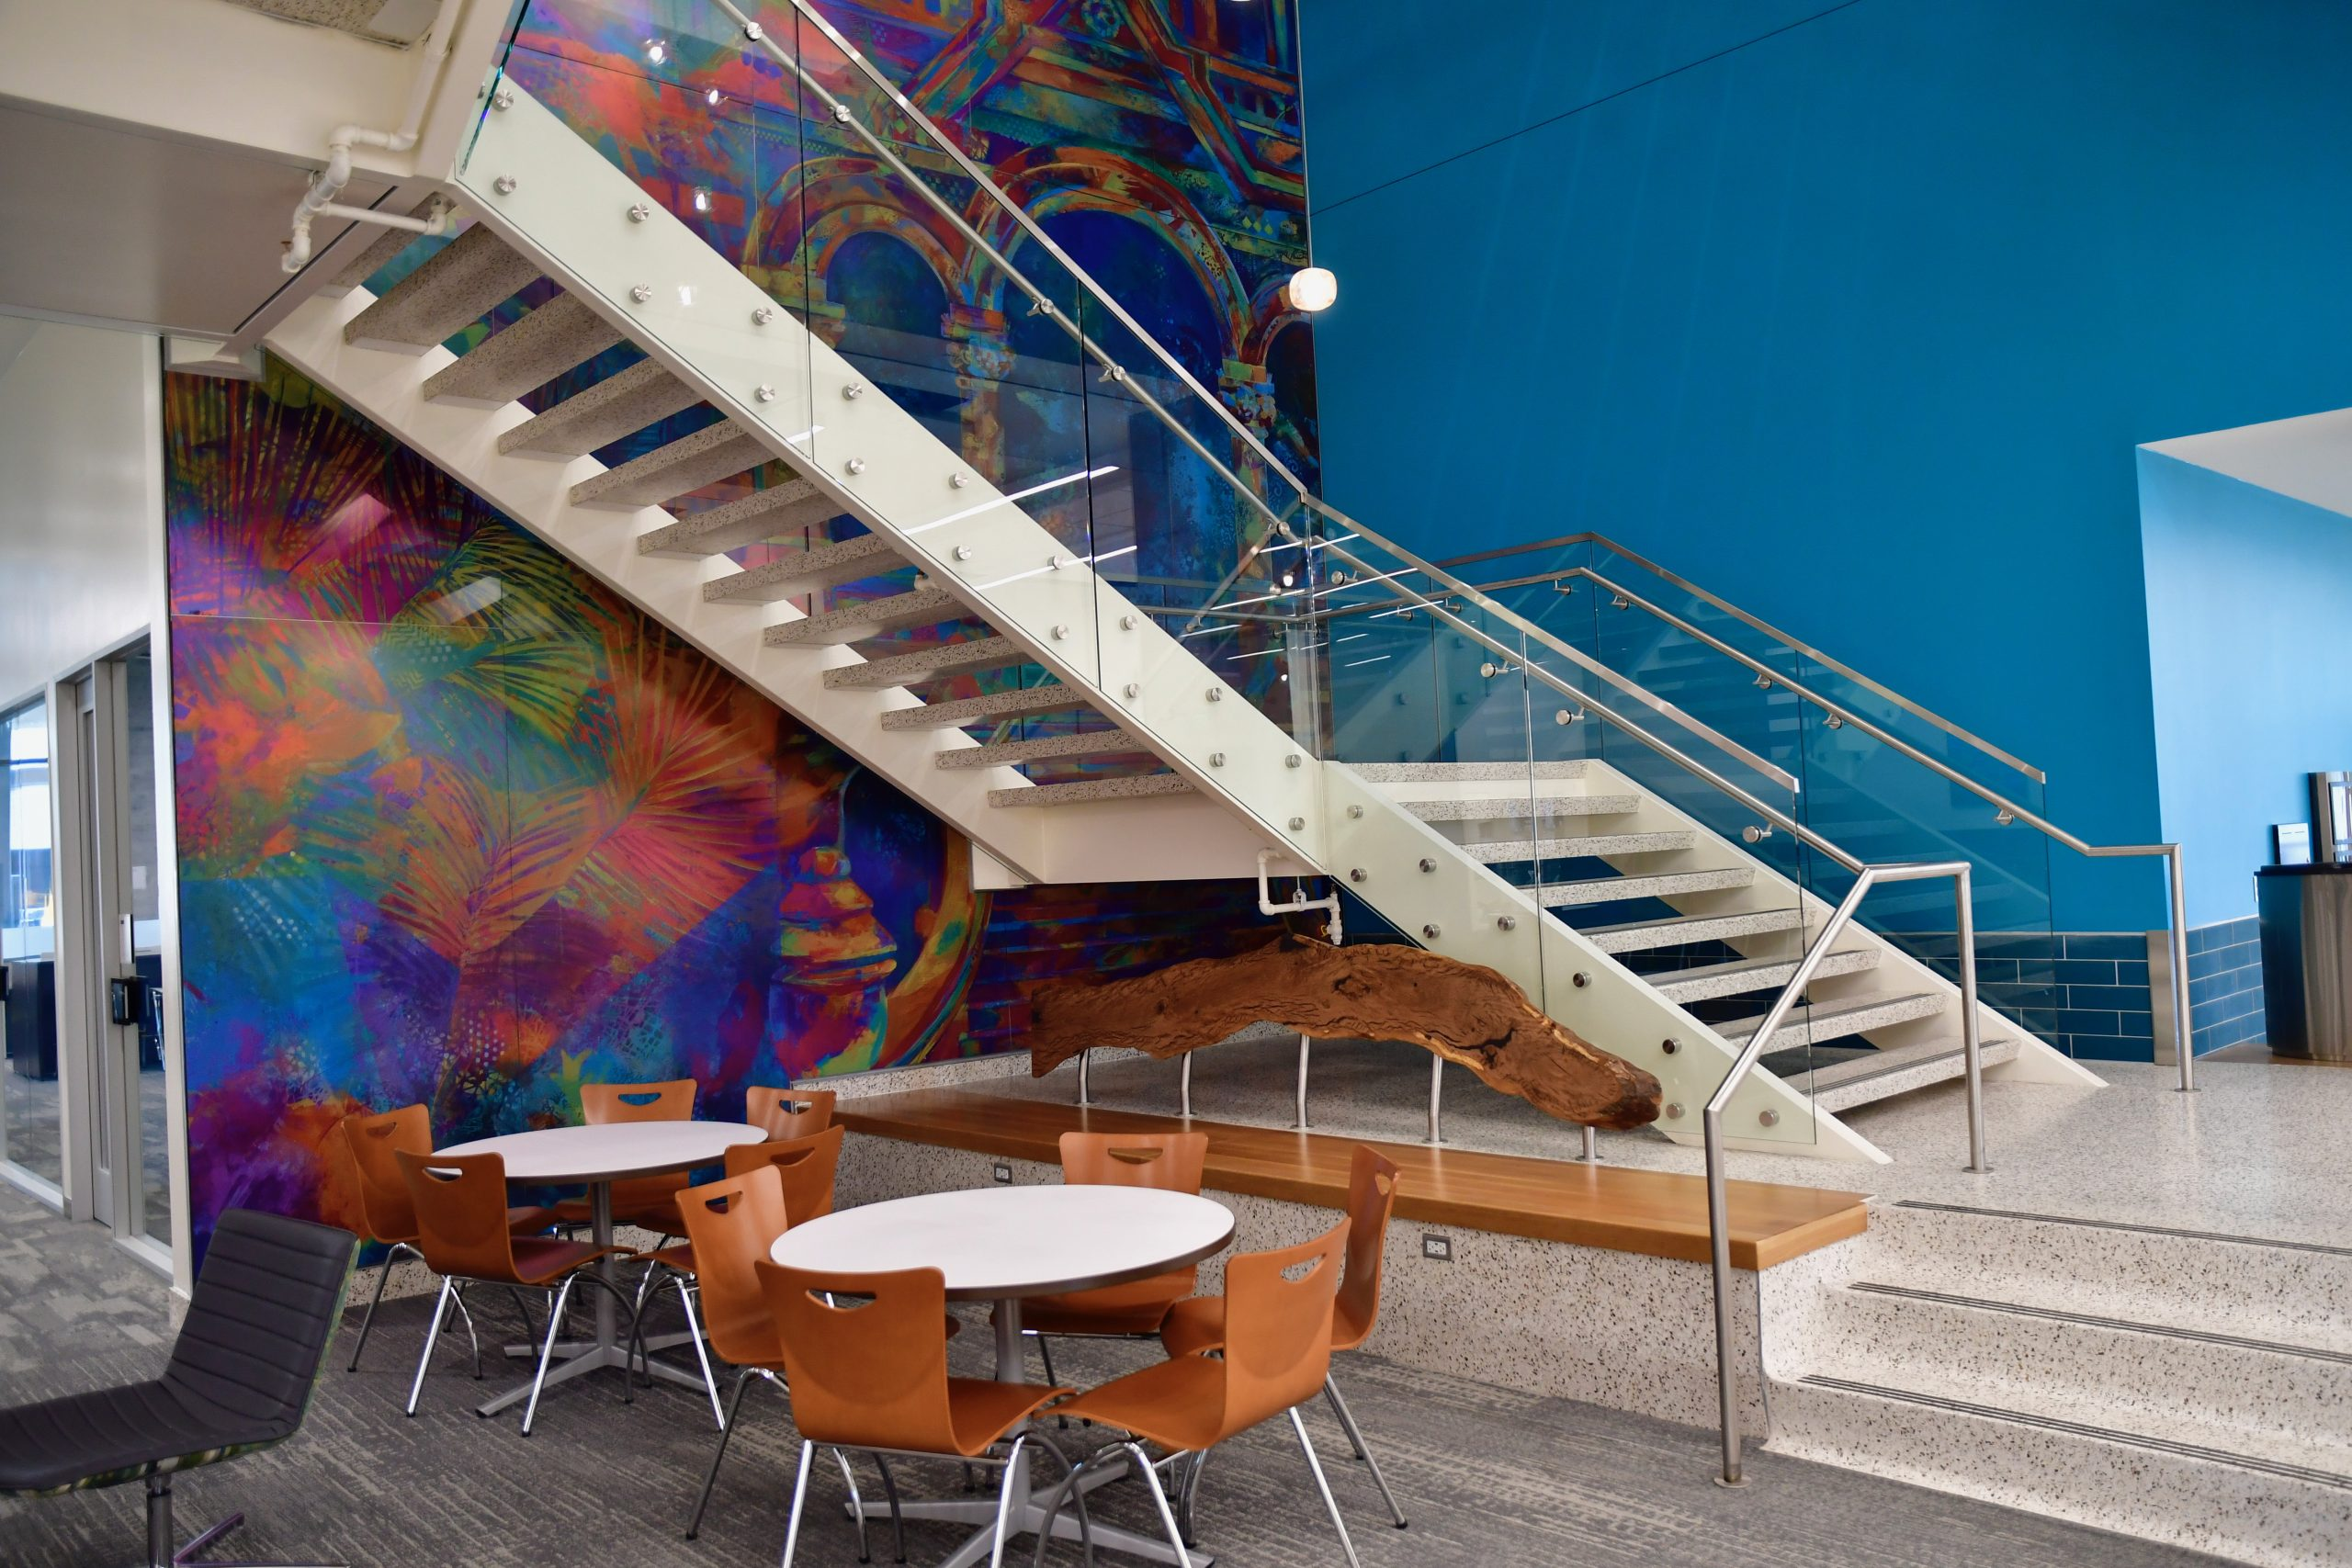 University of Texas Medical Branch Health Education Center – Feature Stairwell